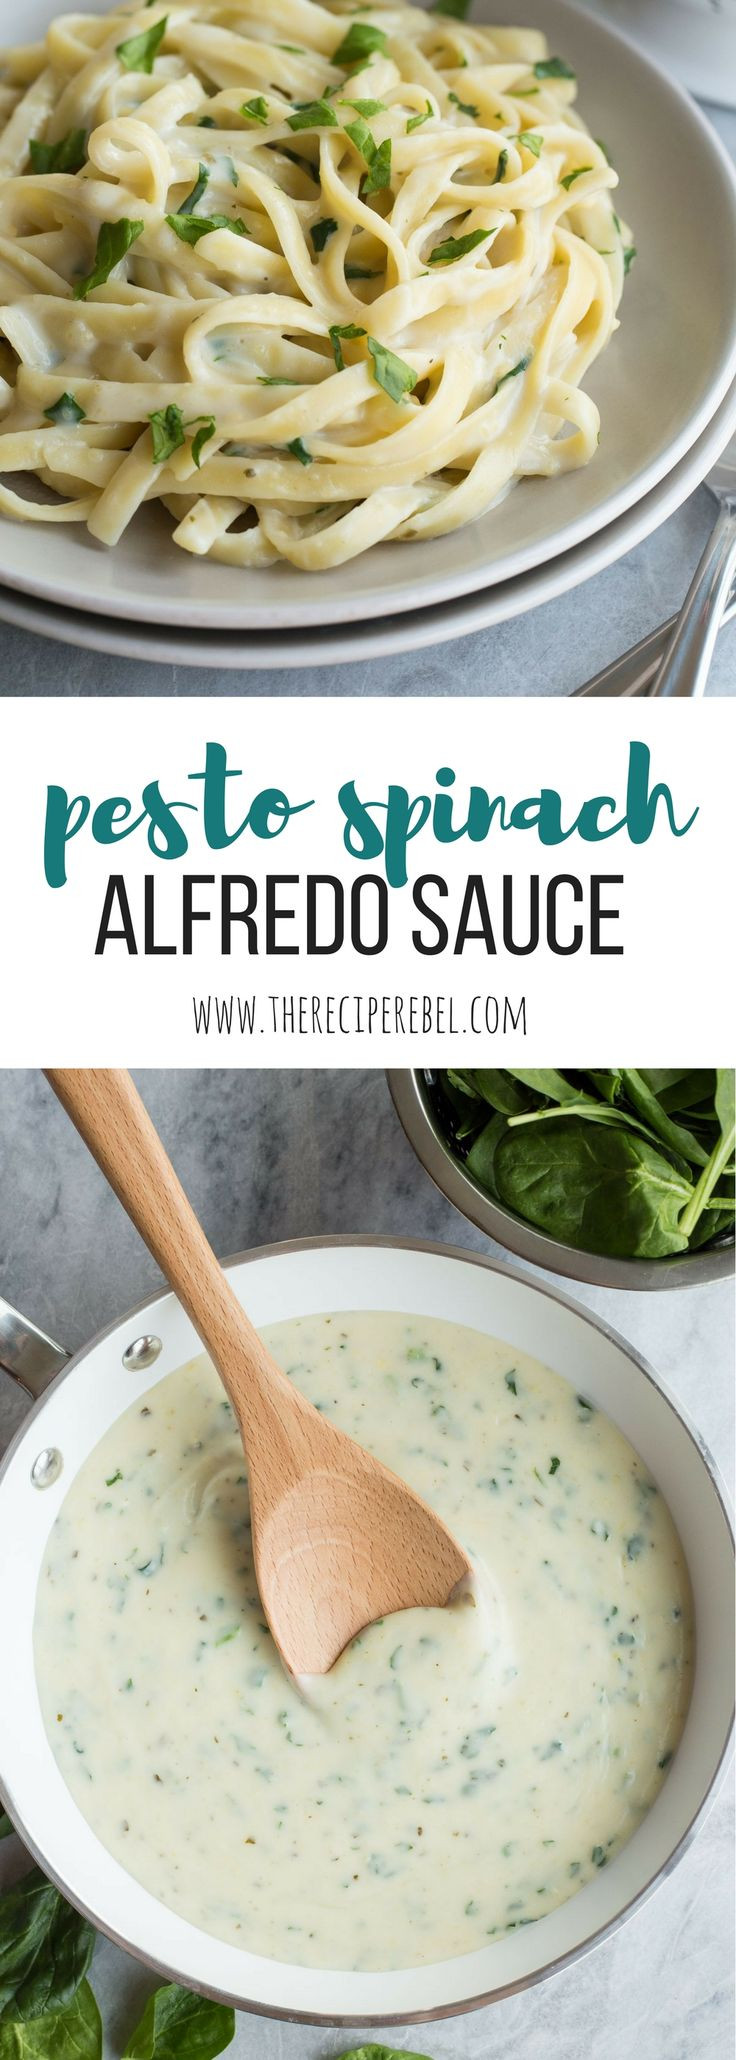 Low Calorie Sauce Recipes  Best 25 Light recipes ideas on Pinterest